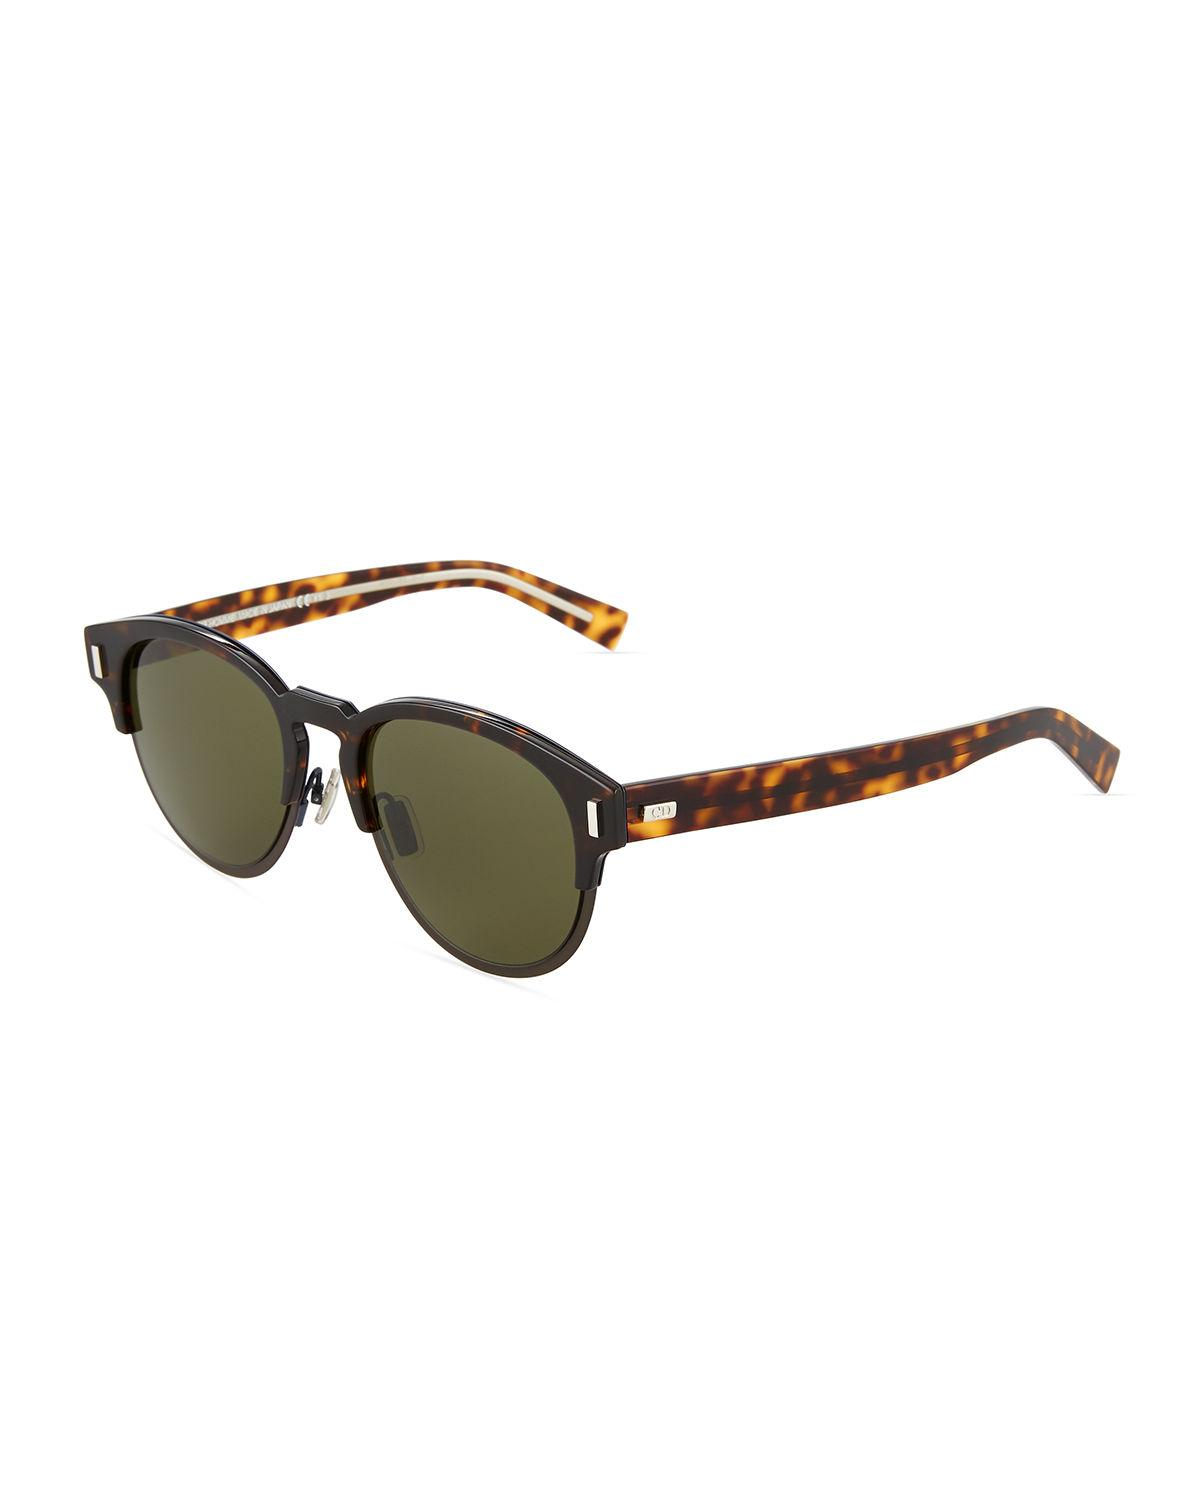 59aab4be37 Dior Brow-line Acetate Sunglasses in Brown - Lyst